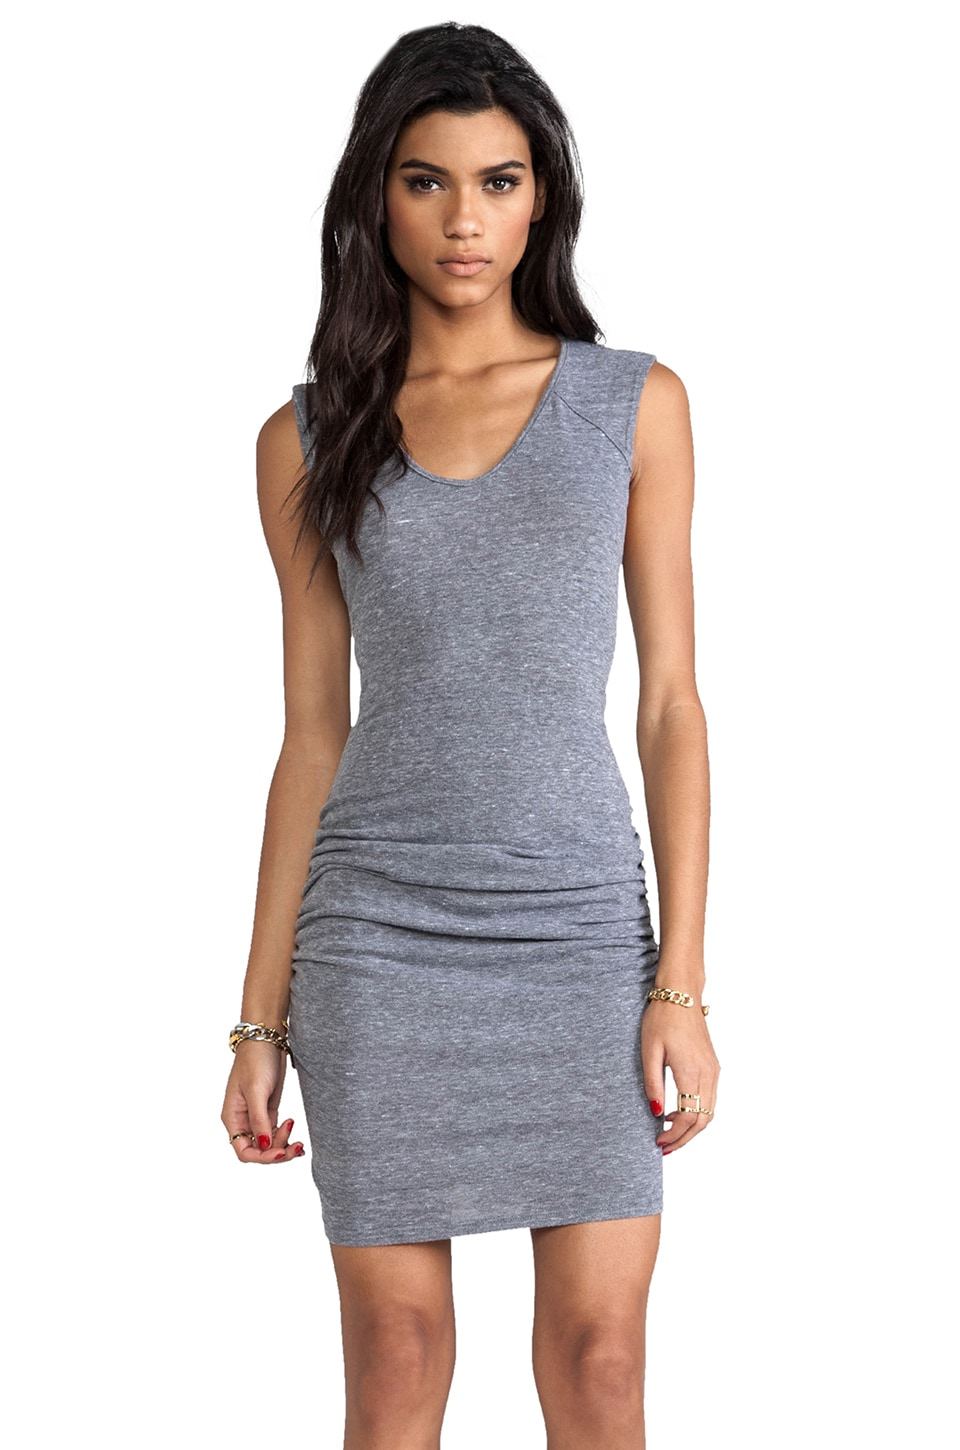 C&C California Muscle Tee Dress in Heather Grey